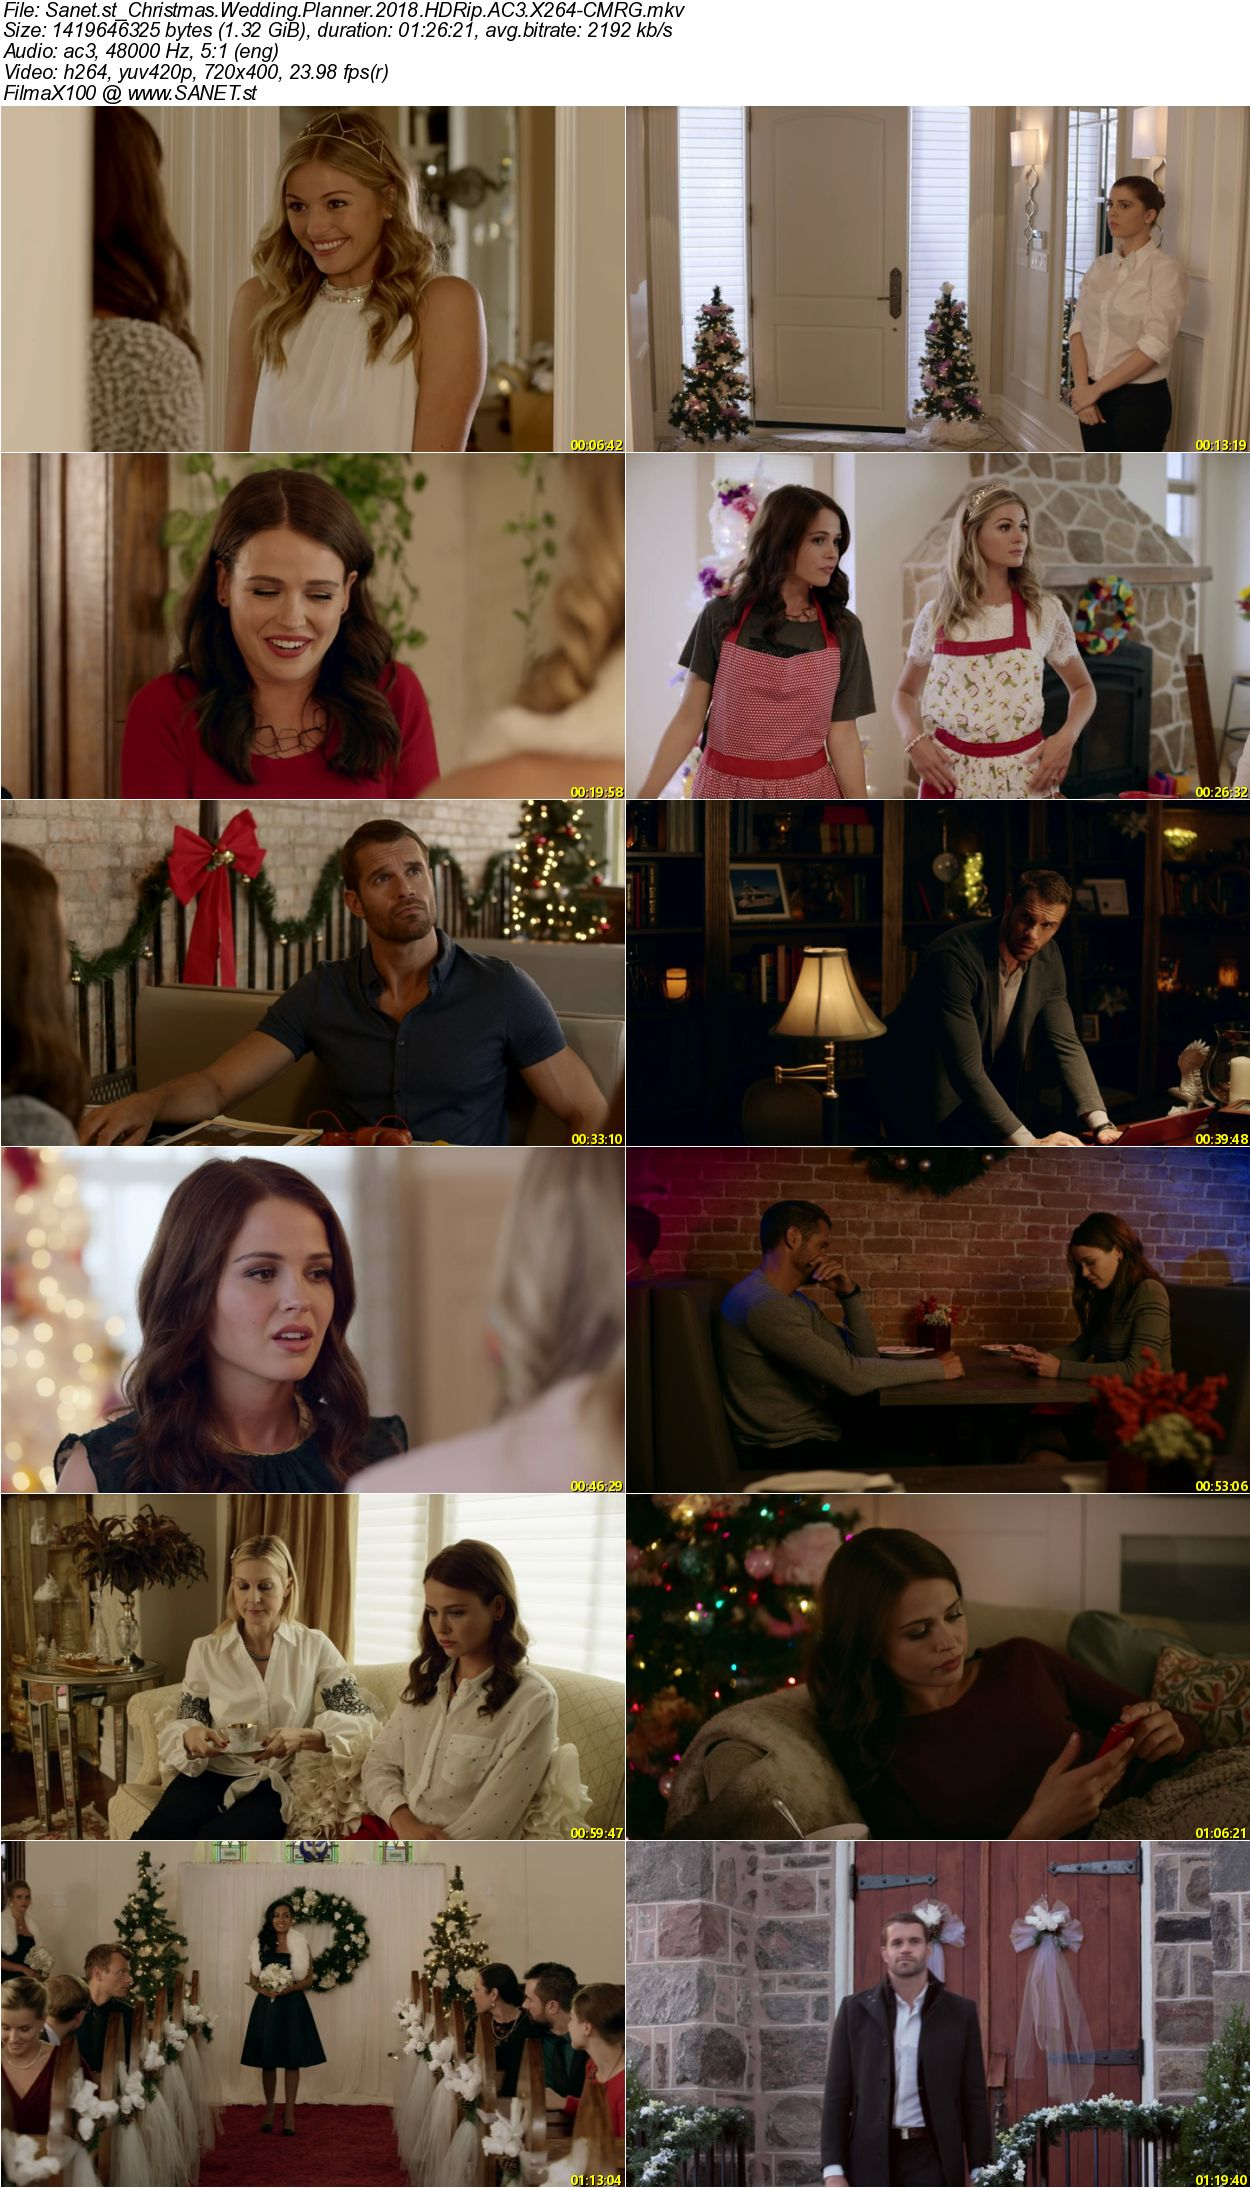 Christmas Wedding Planner.Download Christmas Wedding Planner 2018 Hdrip Ac3 X264 Cmrg